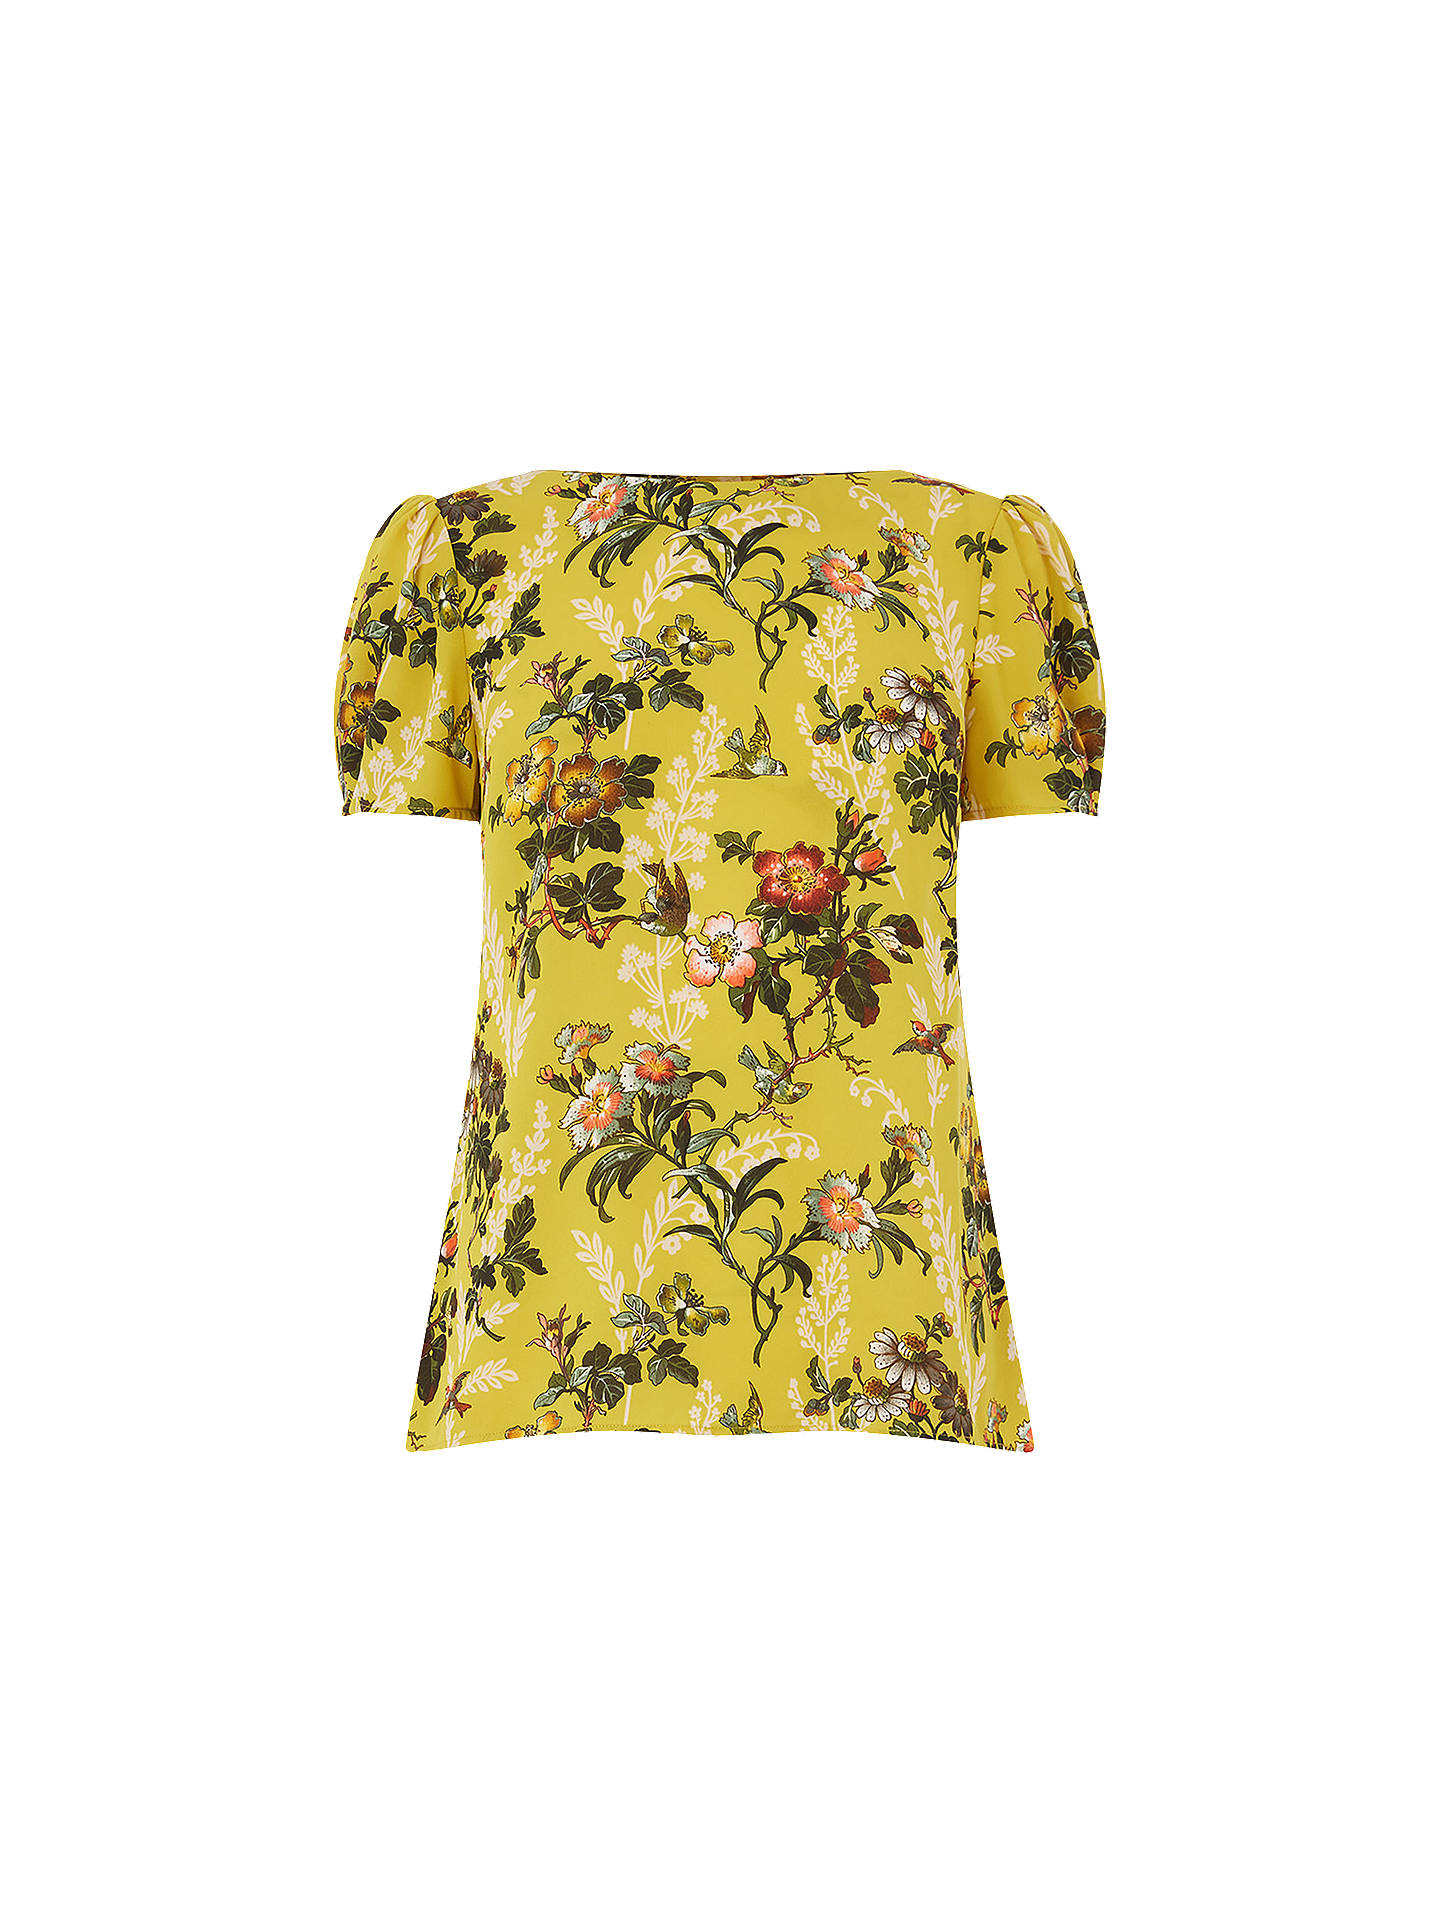 BuyOasis Rosetti 40s Sleeve Top, Multi/Yellow, 8 Online at johnlewis.com